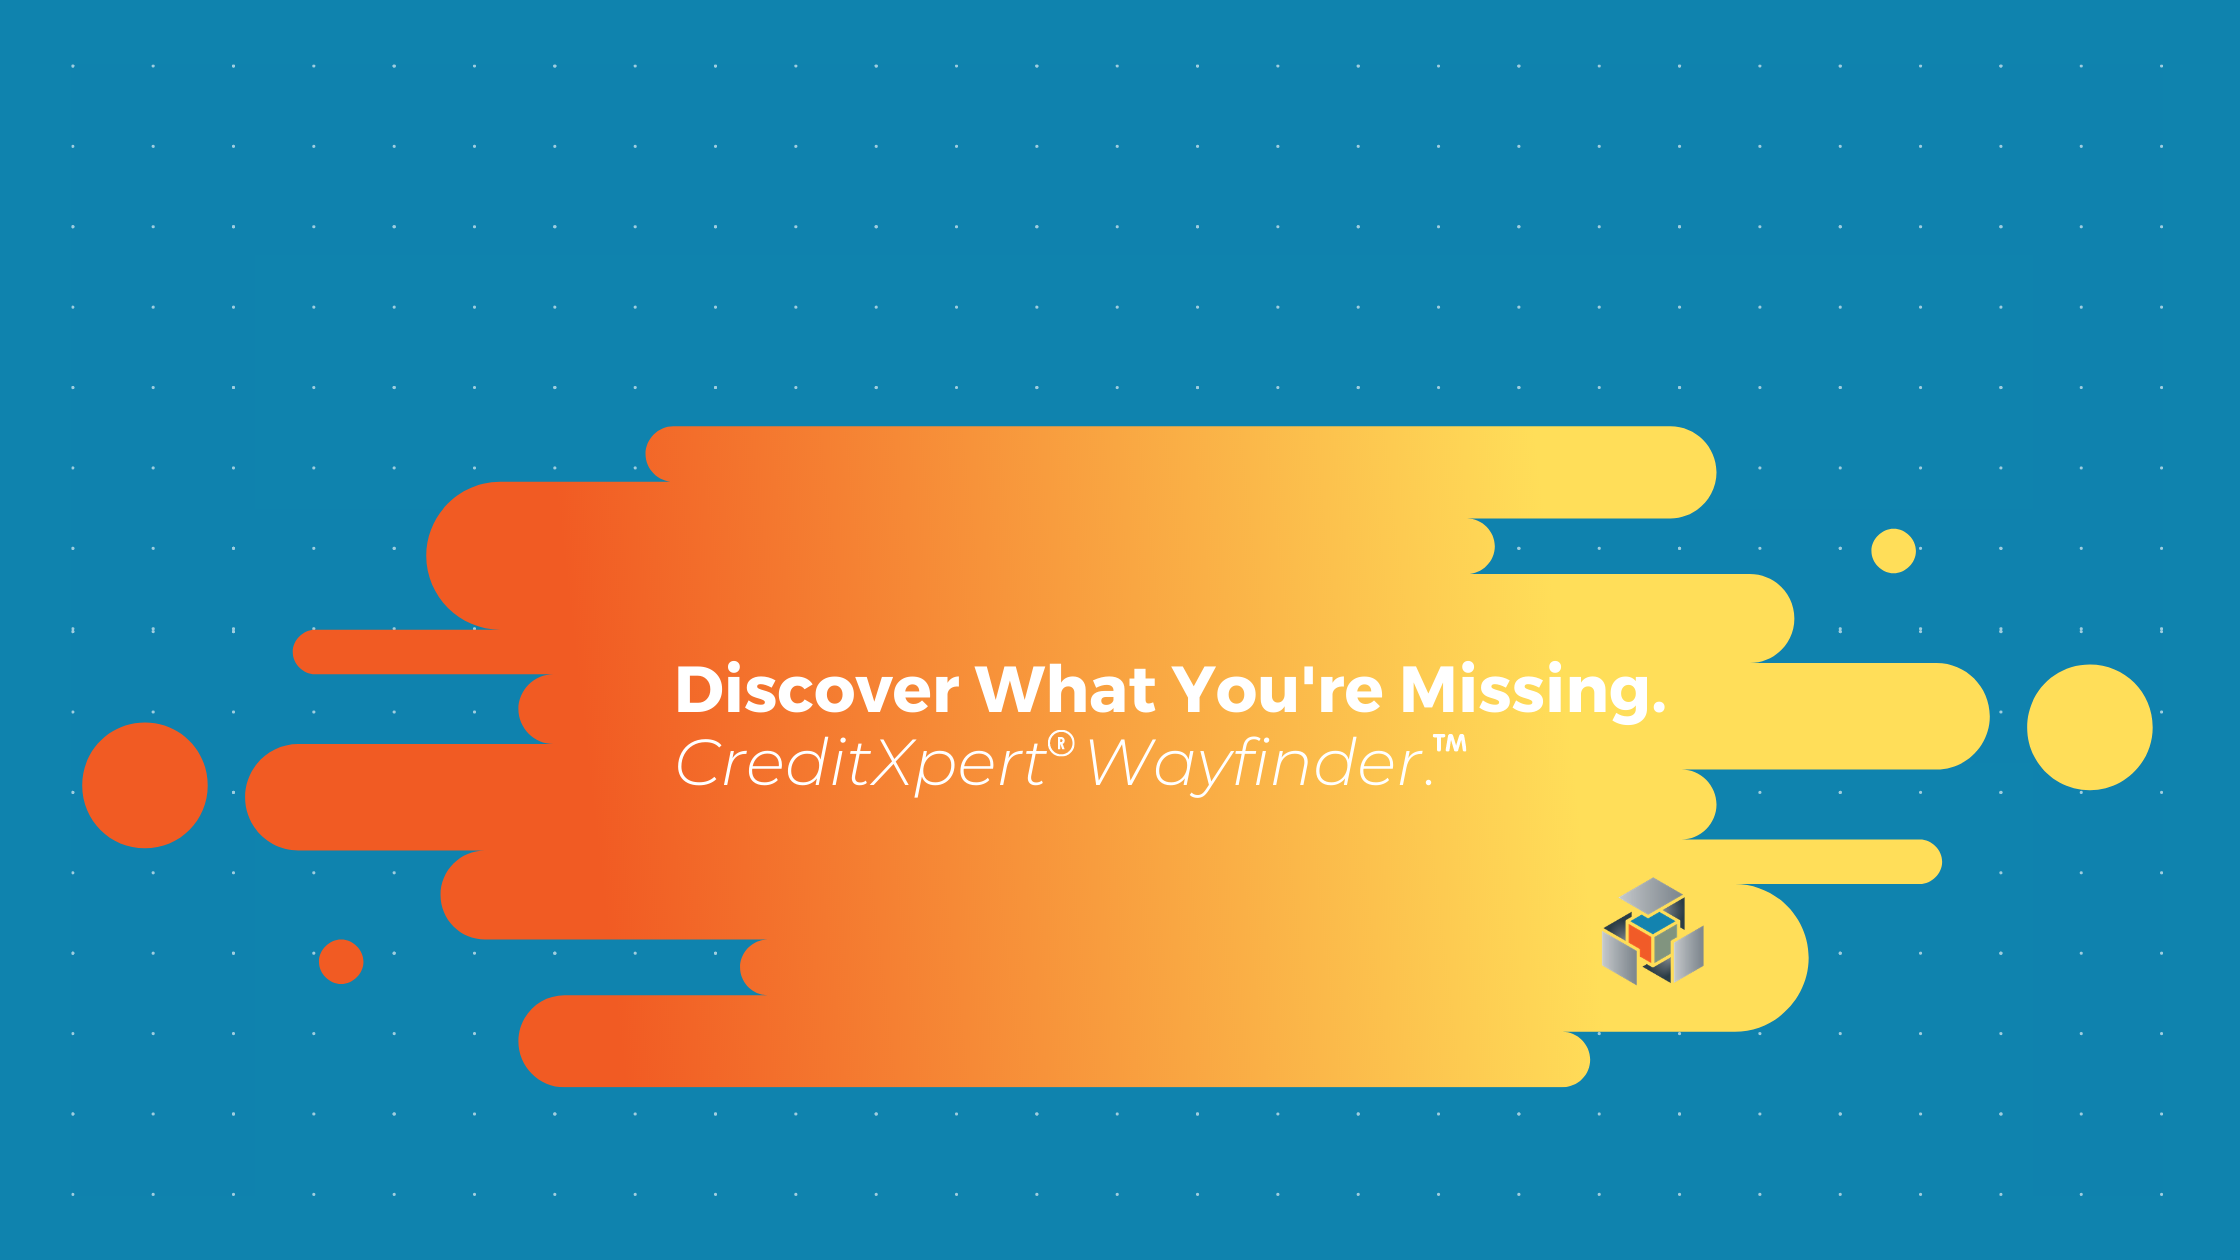 How CreditXpert Wayfinder Can Help You Win More Business